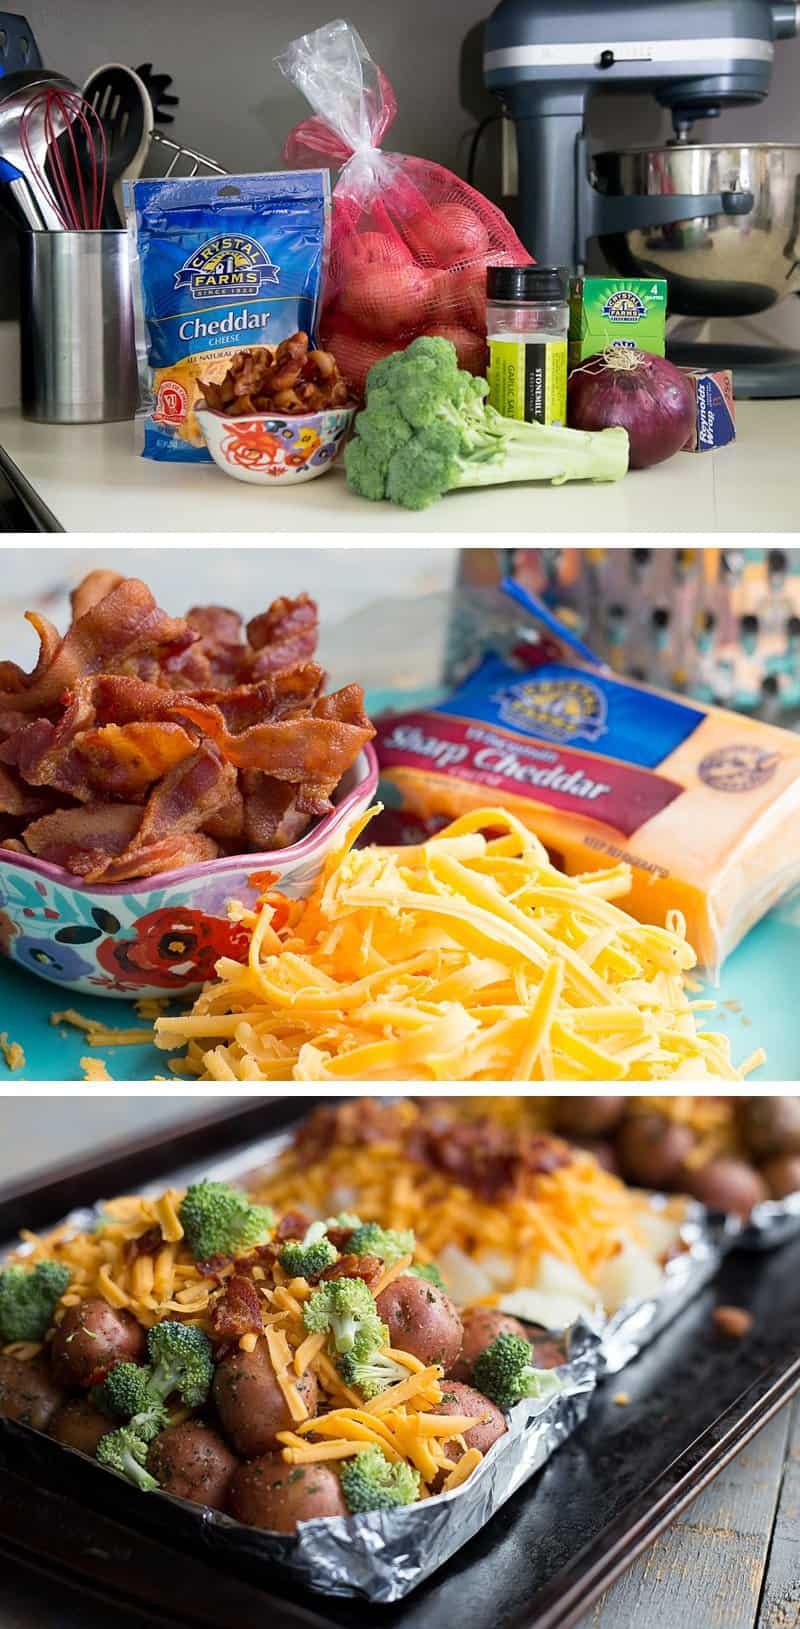 Cheesy Broccoli and Potato Packets: Foil wrapped new potatoes, fresh chopped broccoli bites, sharp cheddar cheese and bacon bits. You have to make these crazy-easy grilled potato bundles this summer. These foil wrapped potato packets are super simple and delicious. Perfect for camping or just a quick family dinner. *Saving this for later!